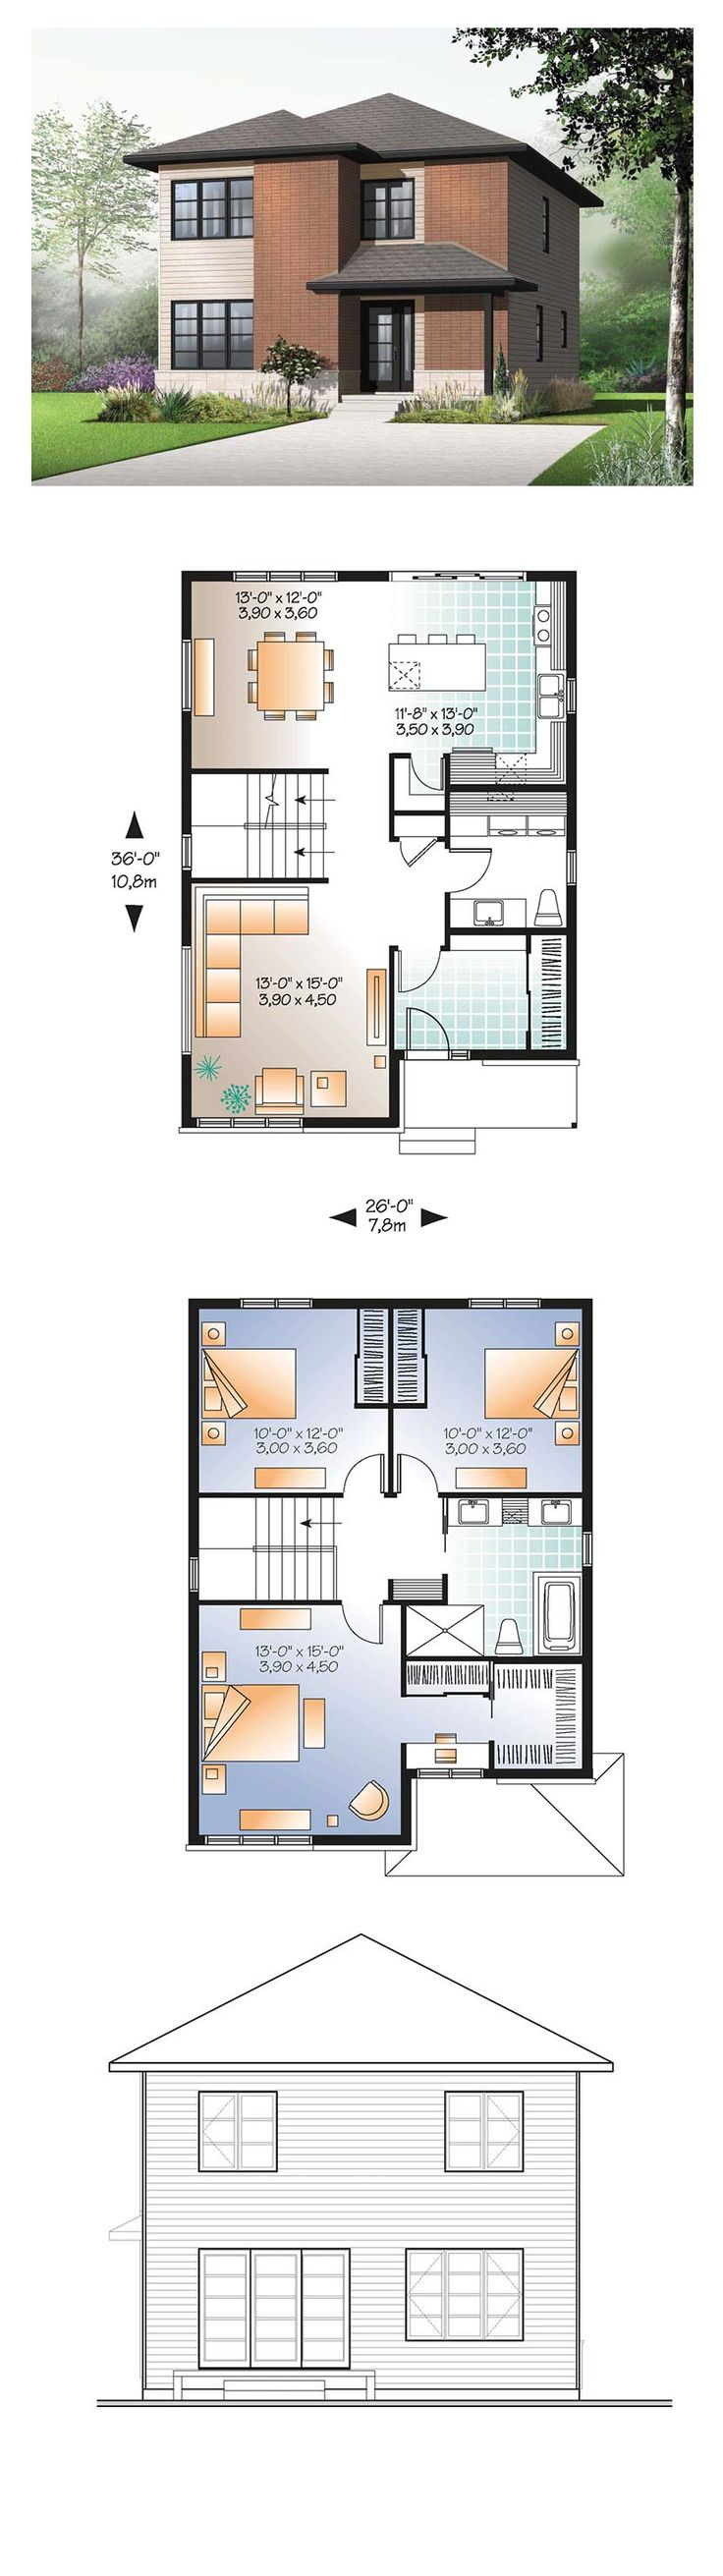 Modern House Plan 76316 | Total Living Area: 1768 sq. ft., 3 bedrooms and 1.5 bathrooms. #modernhome